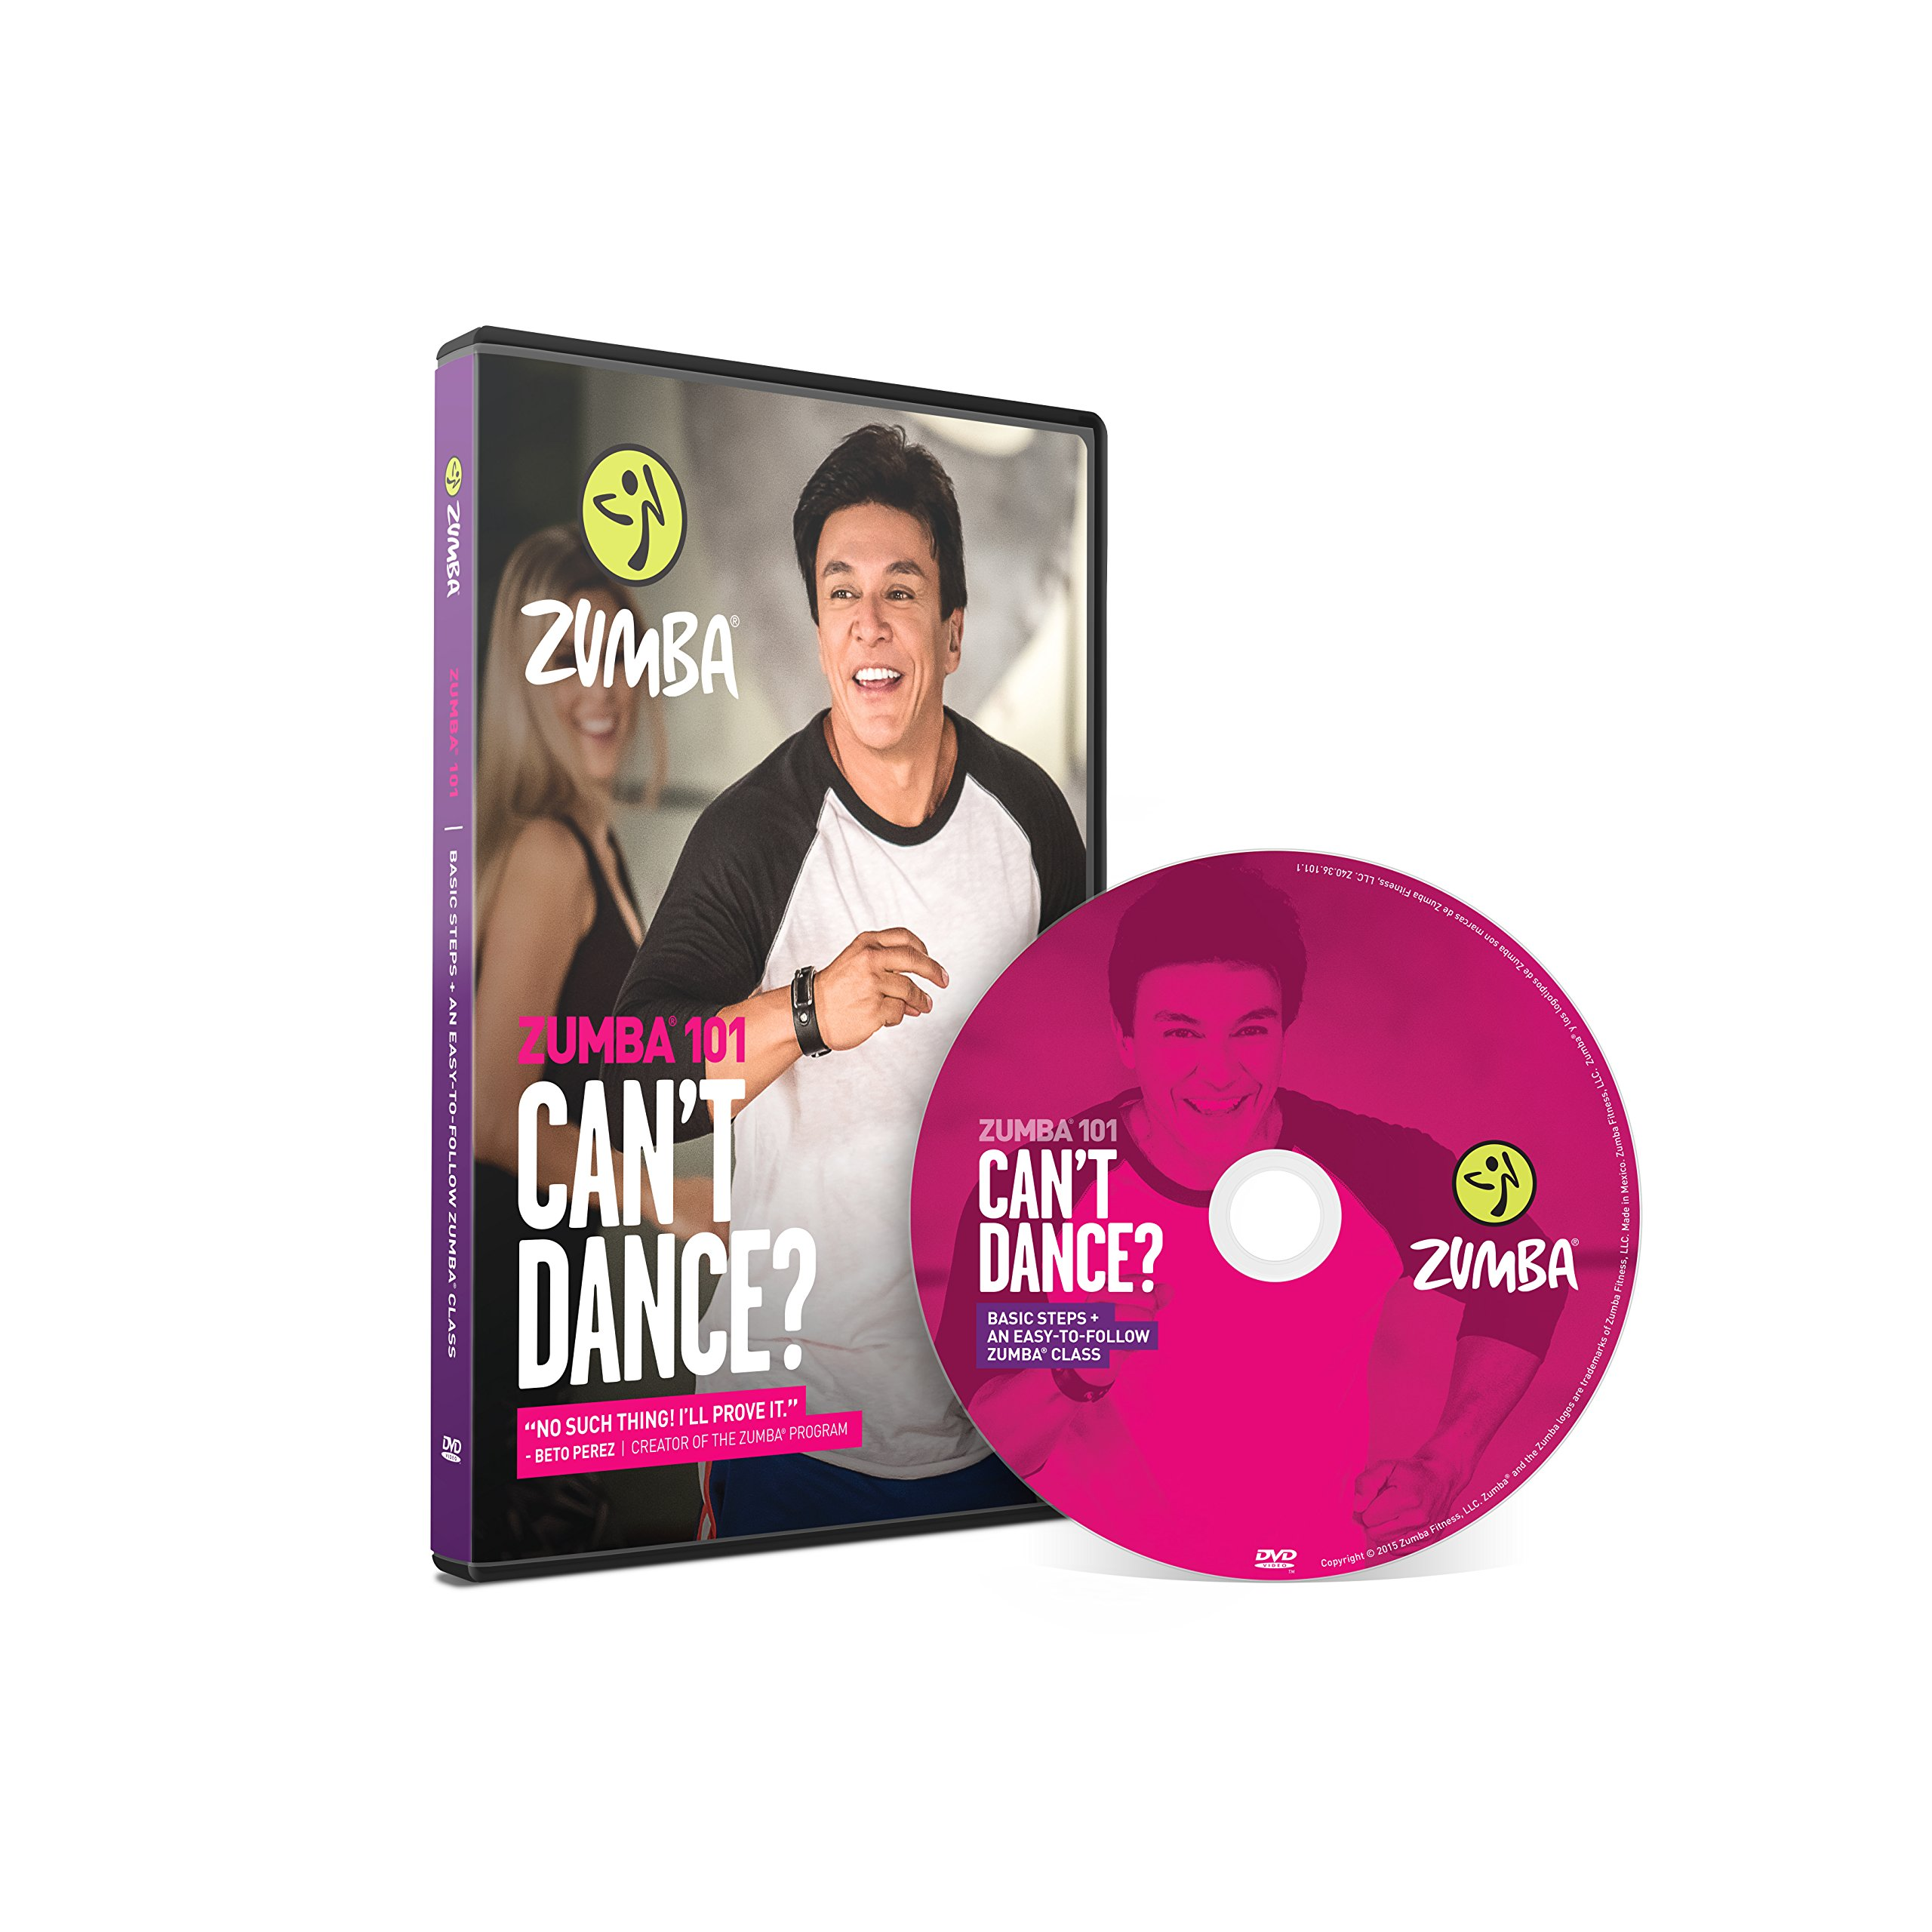 Charlotte S Fitness Dvd Reviews: Best Rated In Exercise & Fitness DVDs & Helpful Customer